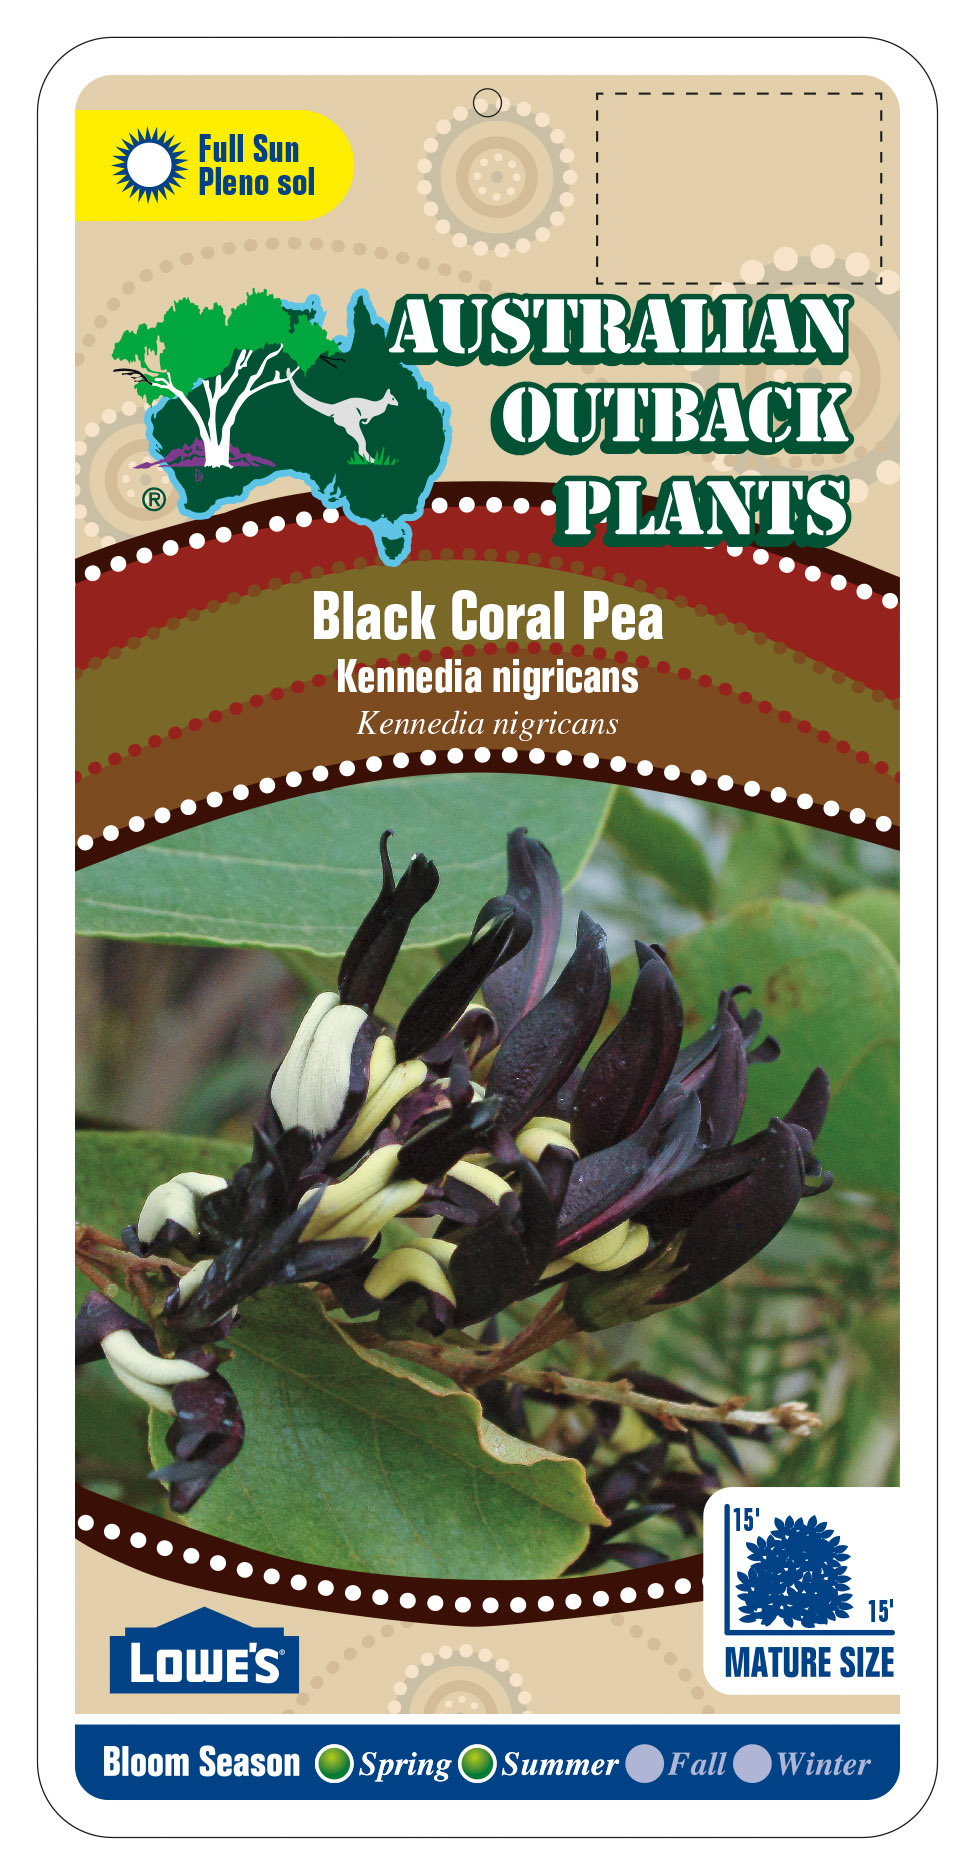 392198_FRONT-Black-Coral-Pea.jpg